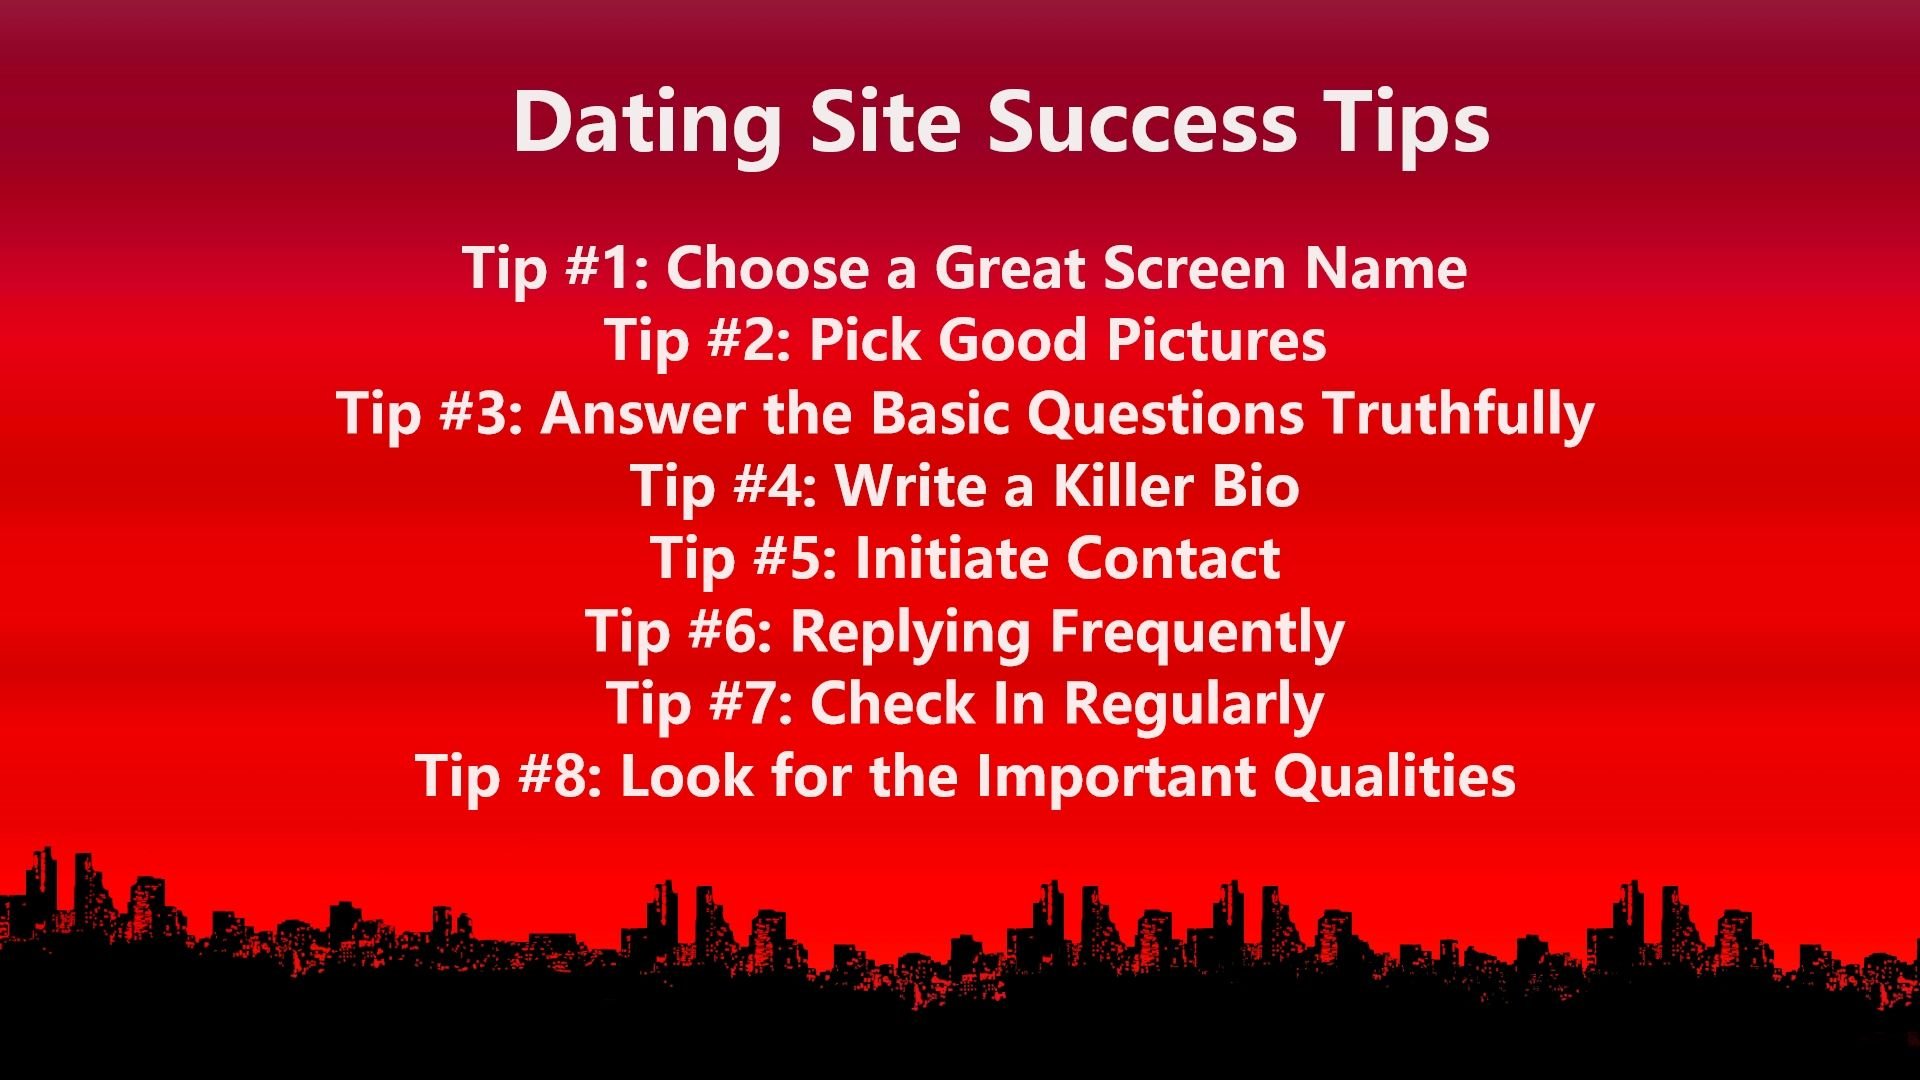 5 6 tip dating)